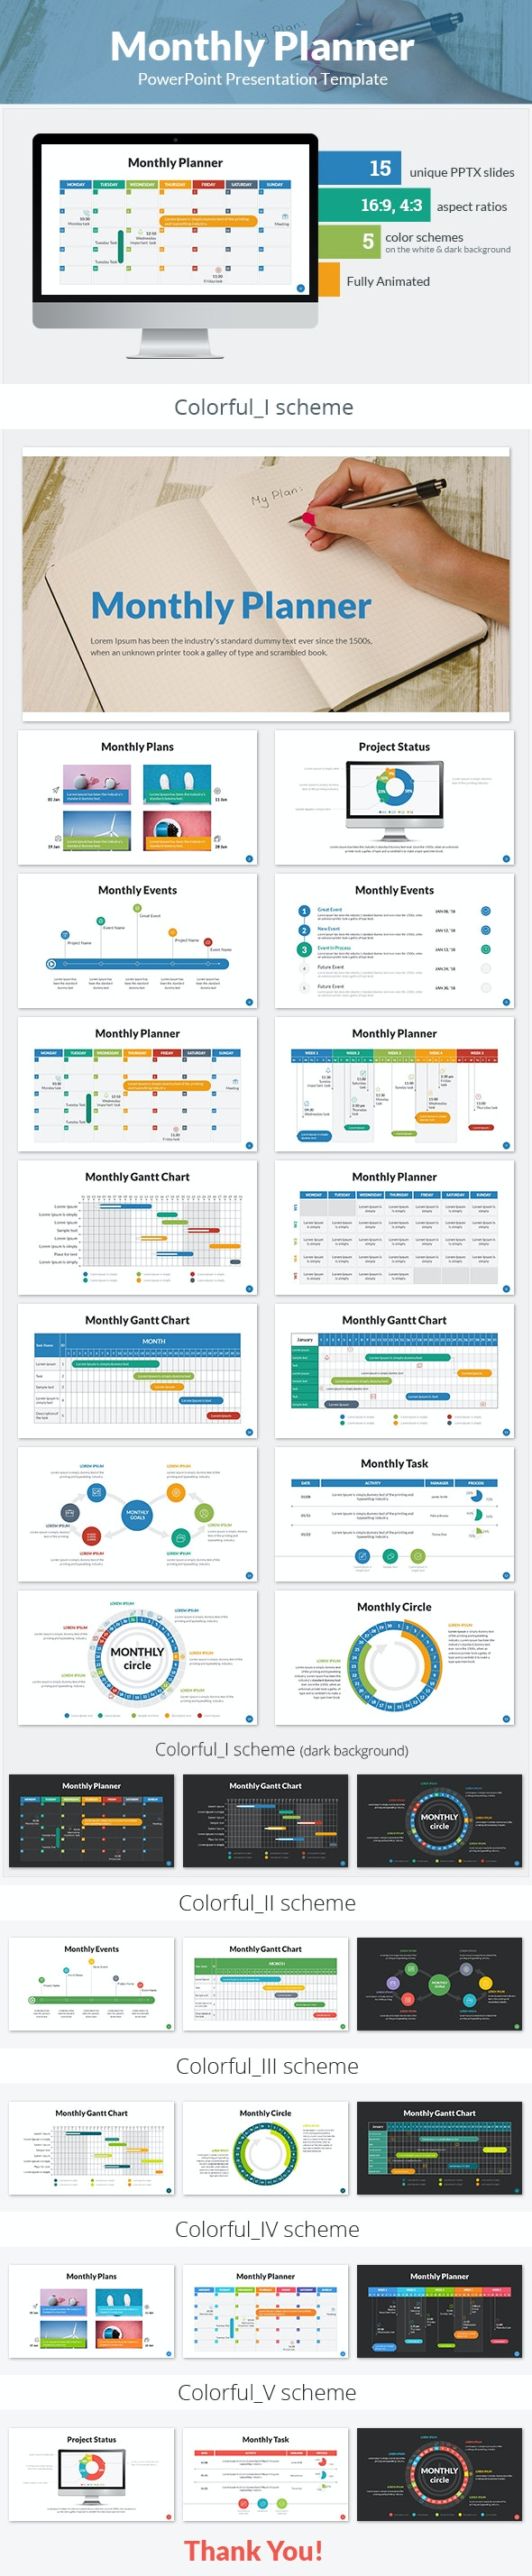 Monthly Planner PowerPoint Presentation Template - Business PowerPoint Templates